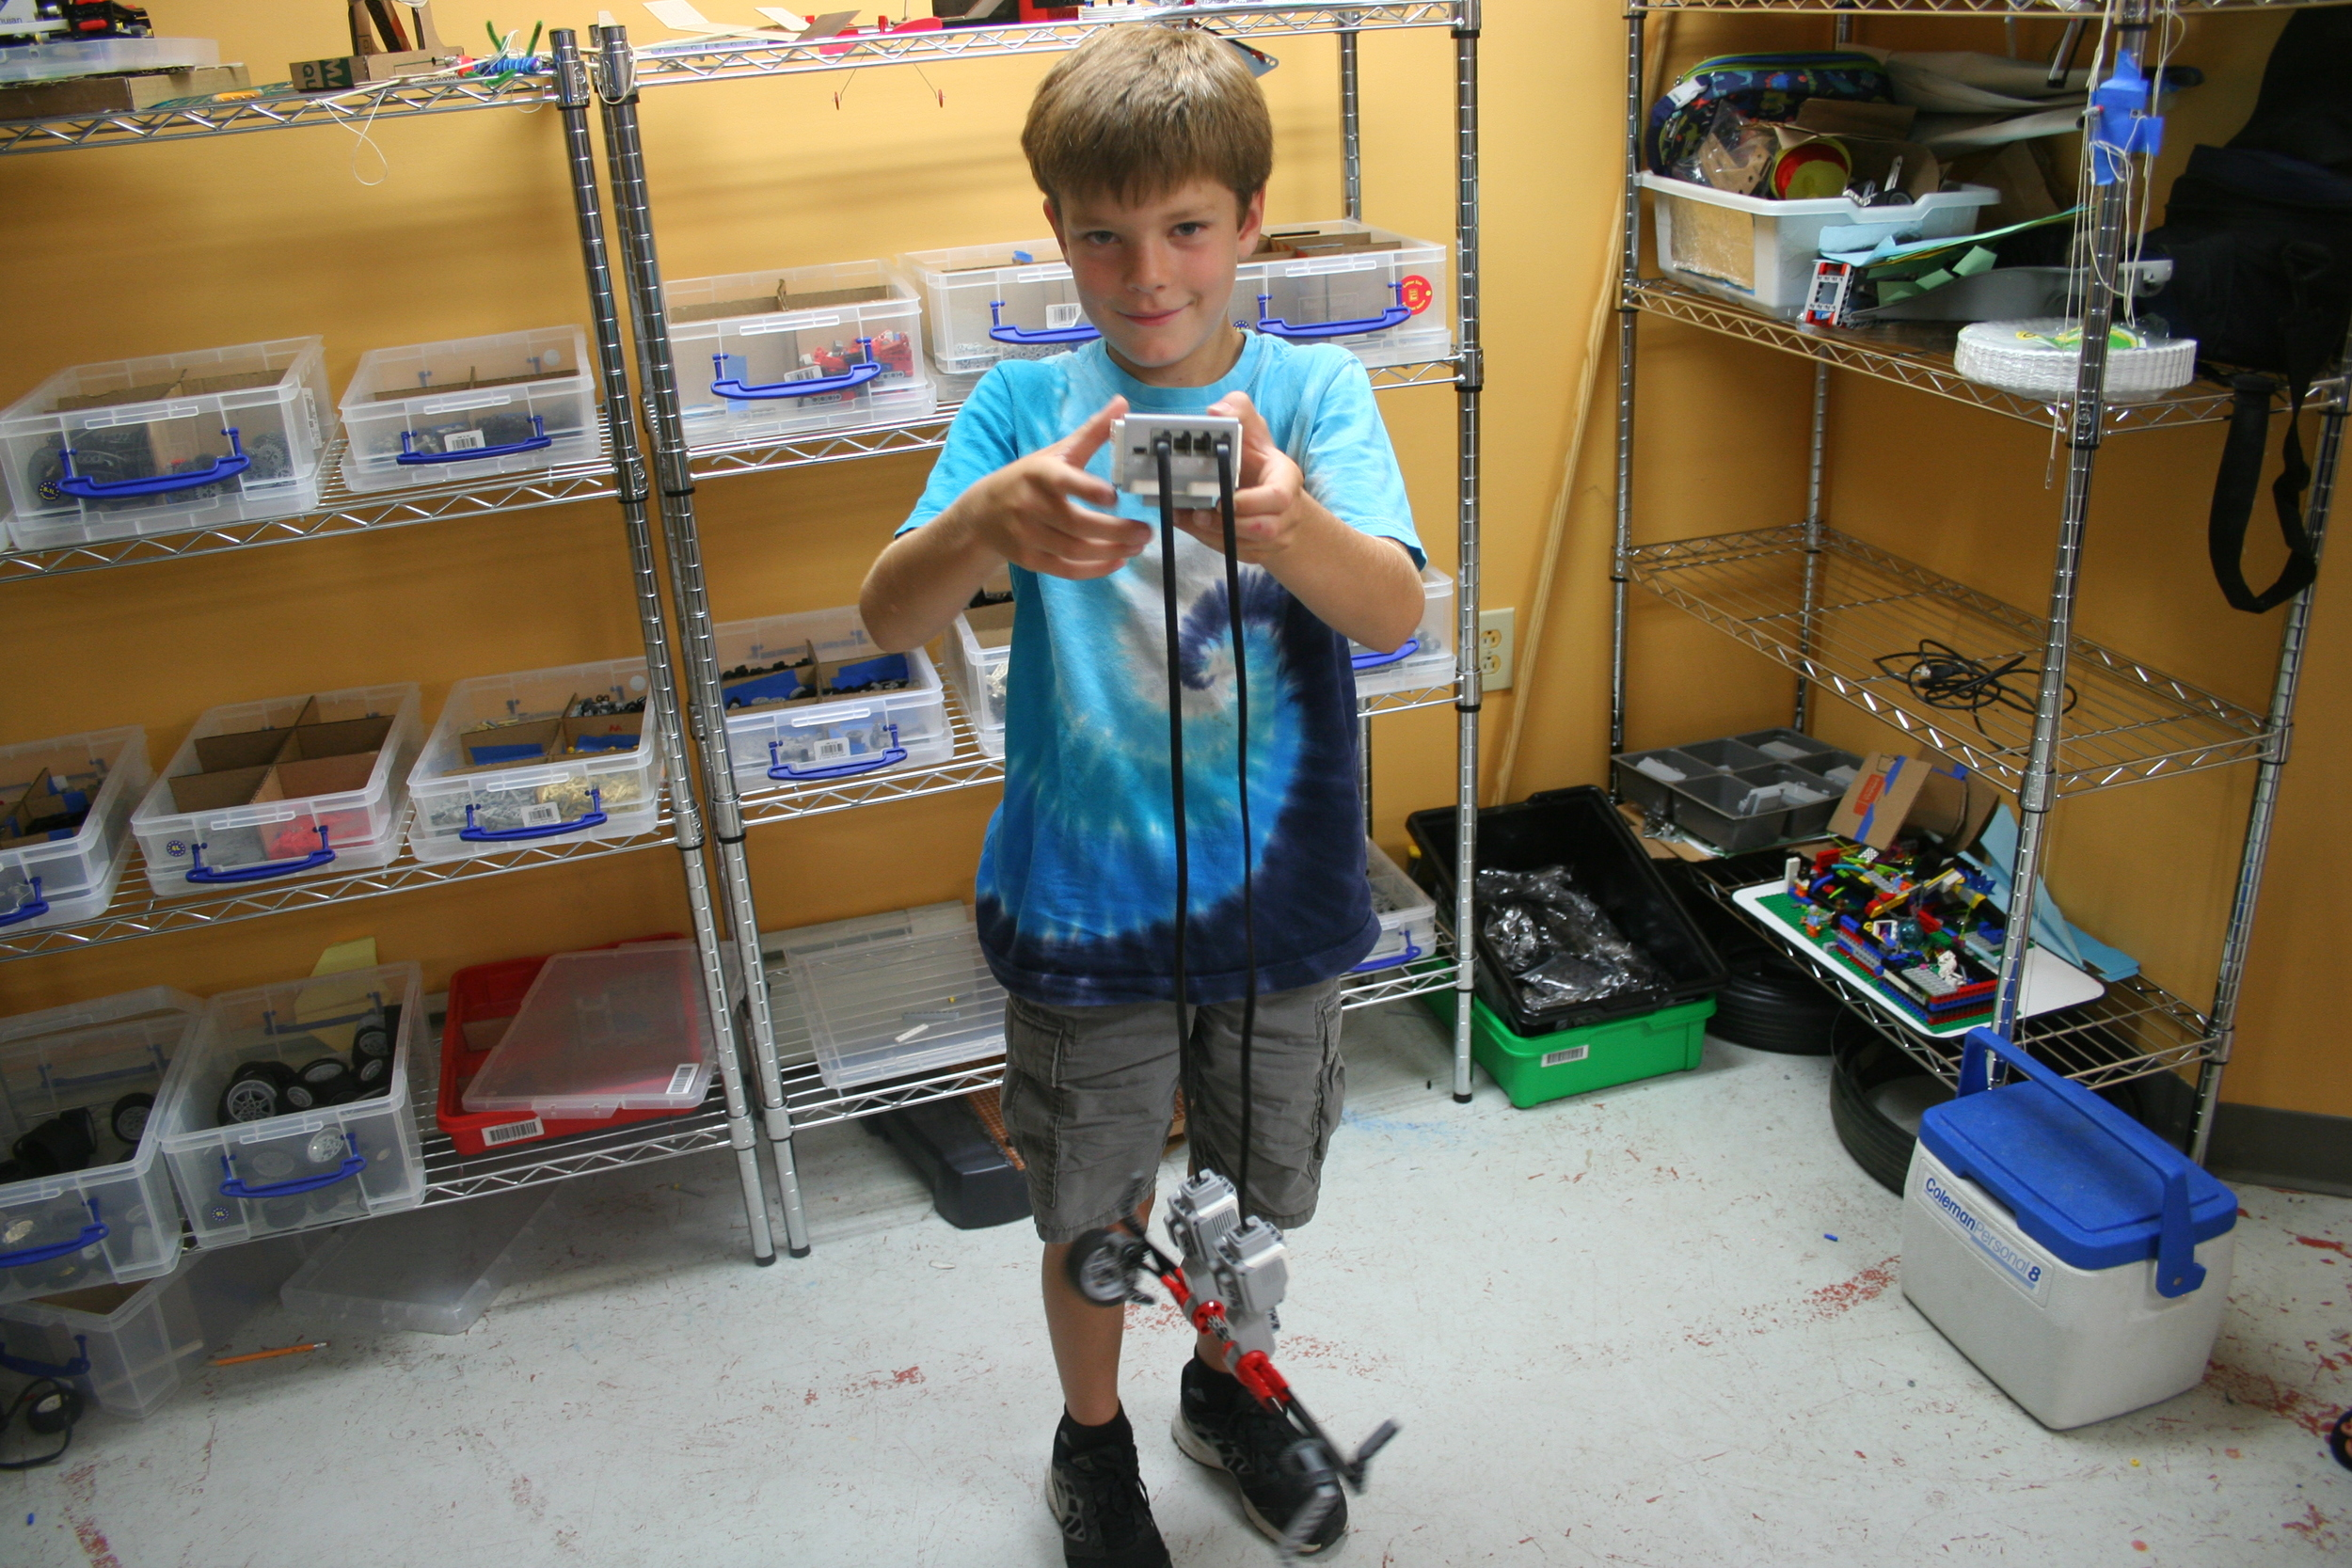 With two days to go our Makers had their first taste of LEGO Mindstorms!